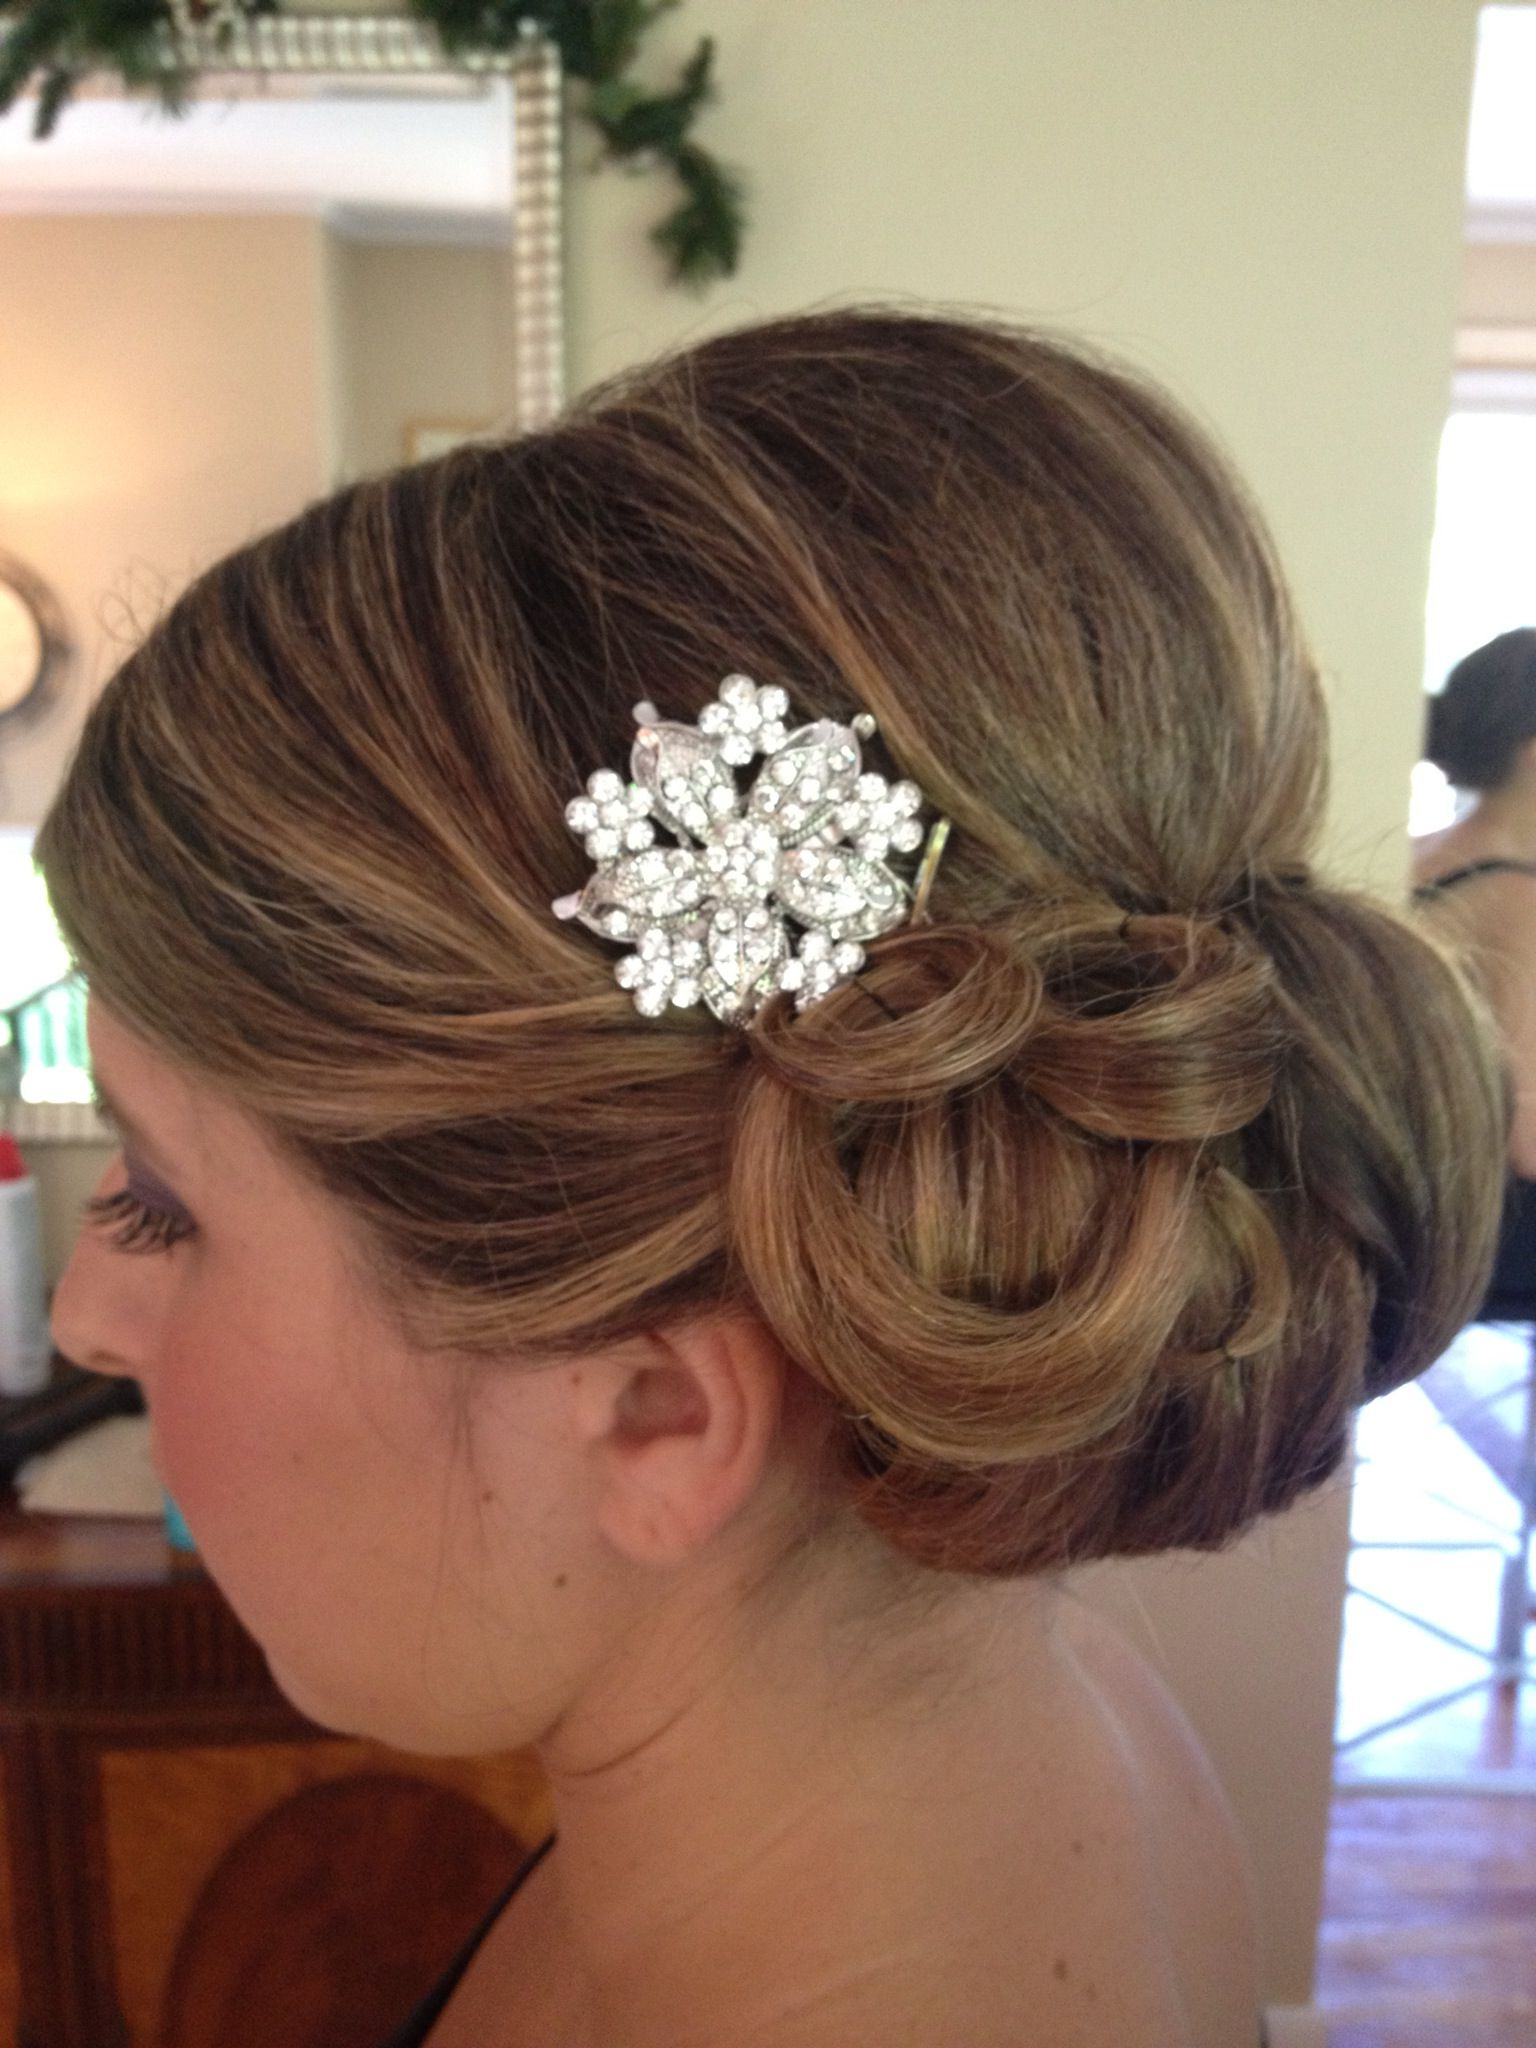 Hairdo Wedding, Bridal Hair, Twist Braids Intended For Most Popular Side Bun Prom Hairstyles With Orchids (View 4 of 20)